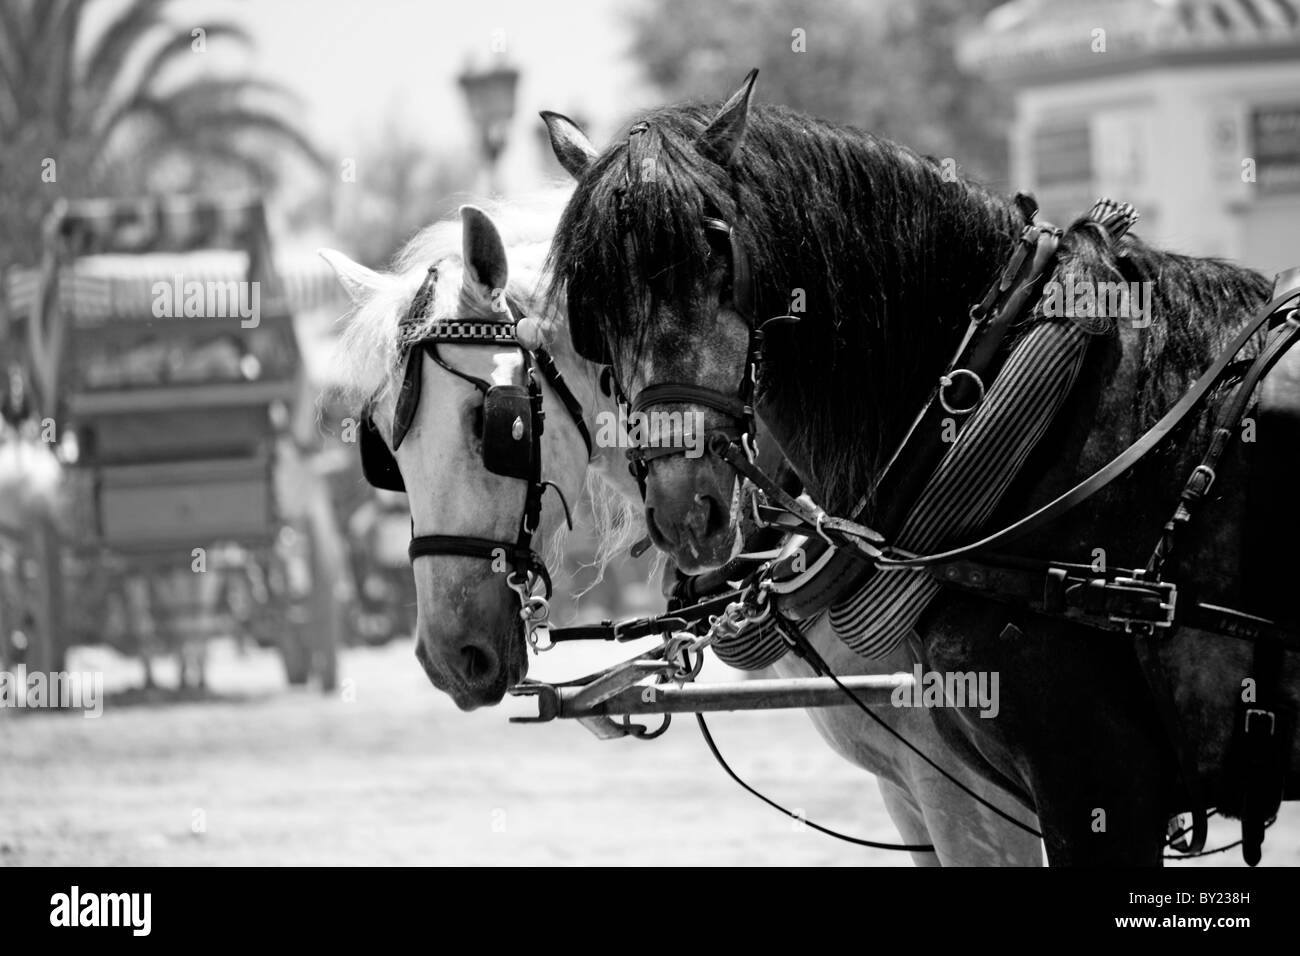 View of two horses watching the camera on the El Rocio festivity on Spain. - Stock Image